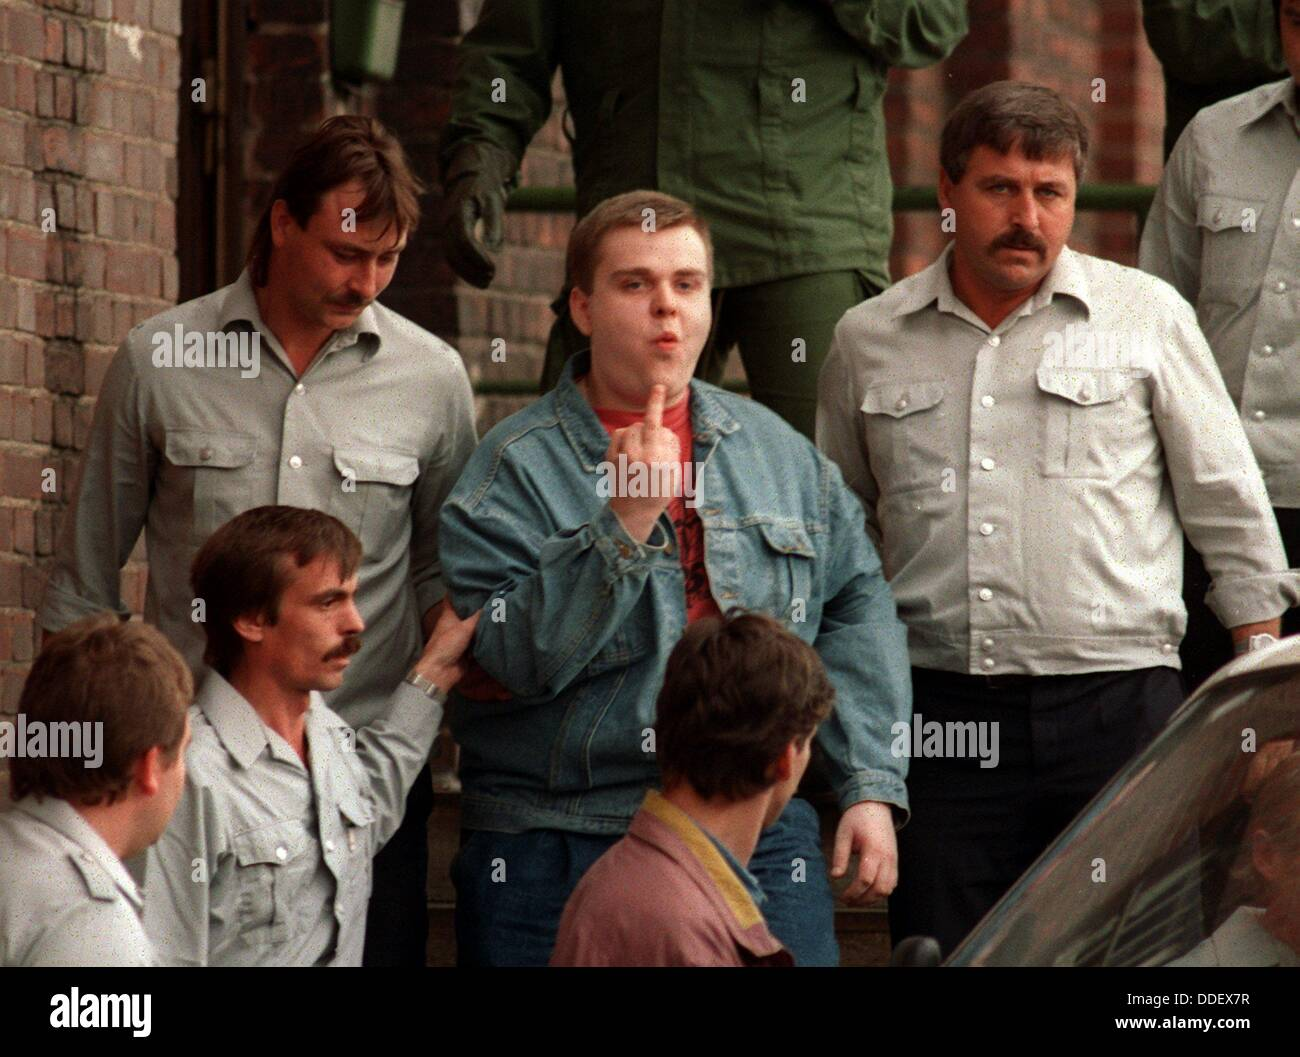 Sven Boecker (M), one of the defendants at the skindhead trial in Eberswaldek, leaves court on the 14th of September - Stock Image